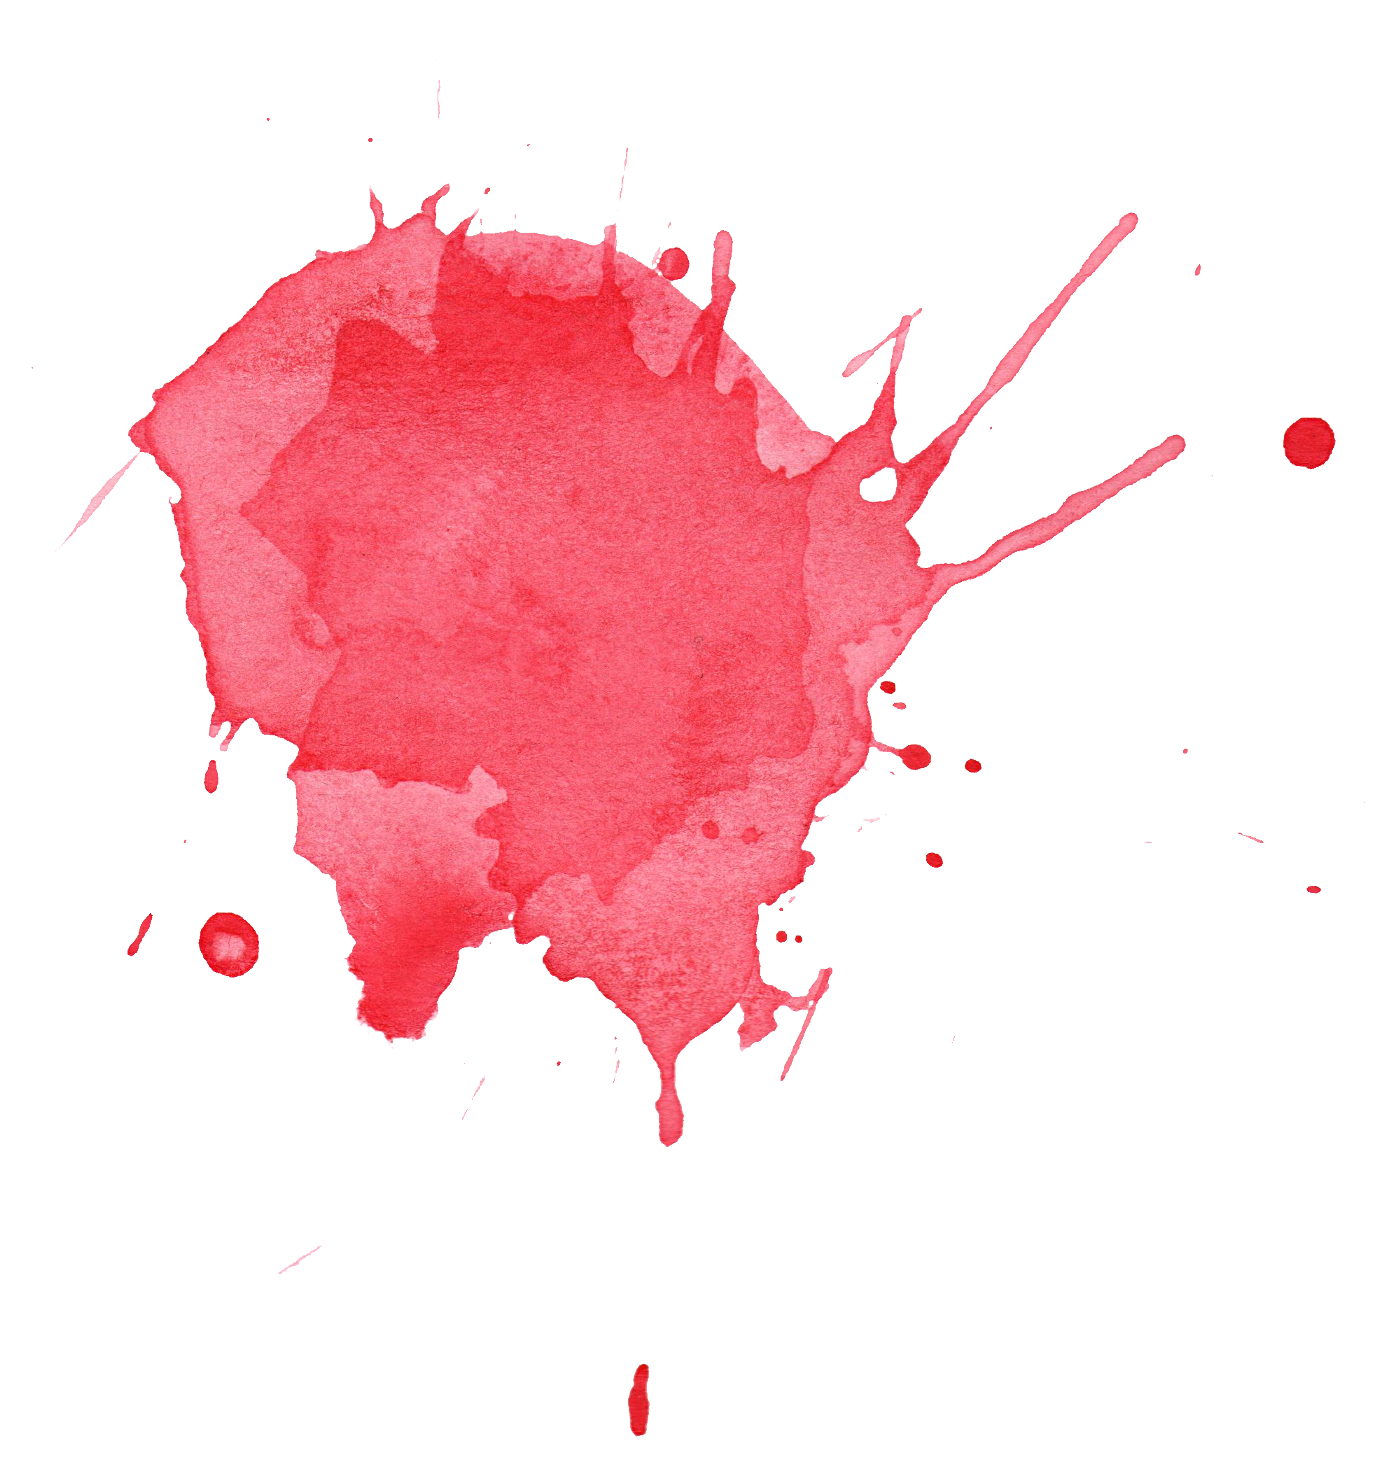 Stain red watercolor splatter. Dried blood png